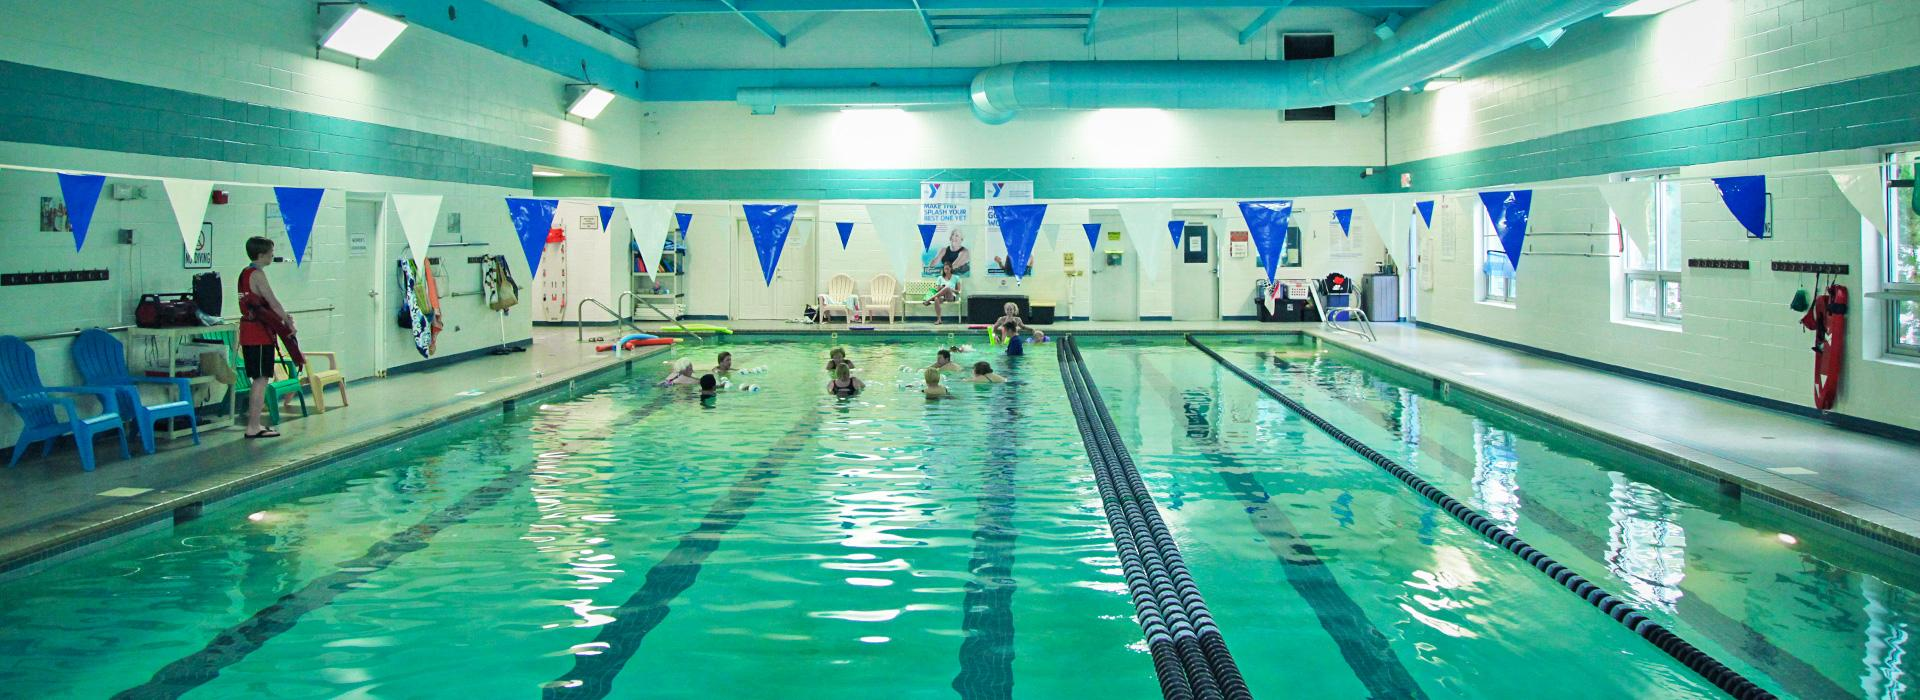 Members swimming in the 25-yard indoor lap swimming pool at the Hilltop Family YMCA